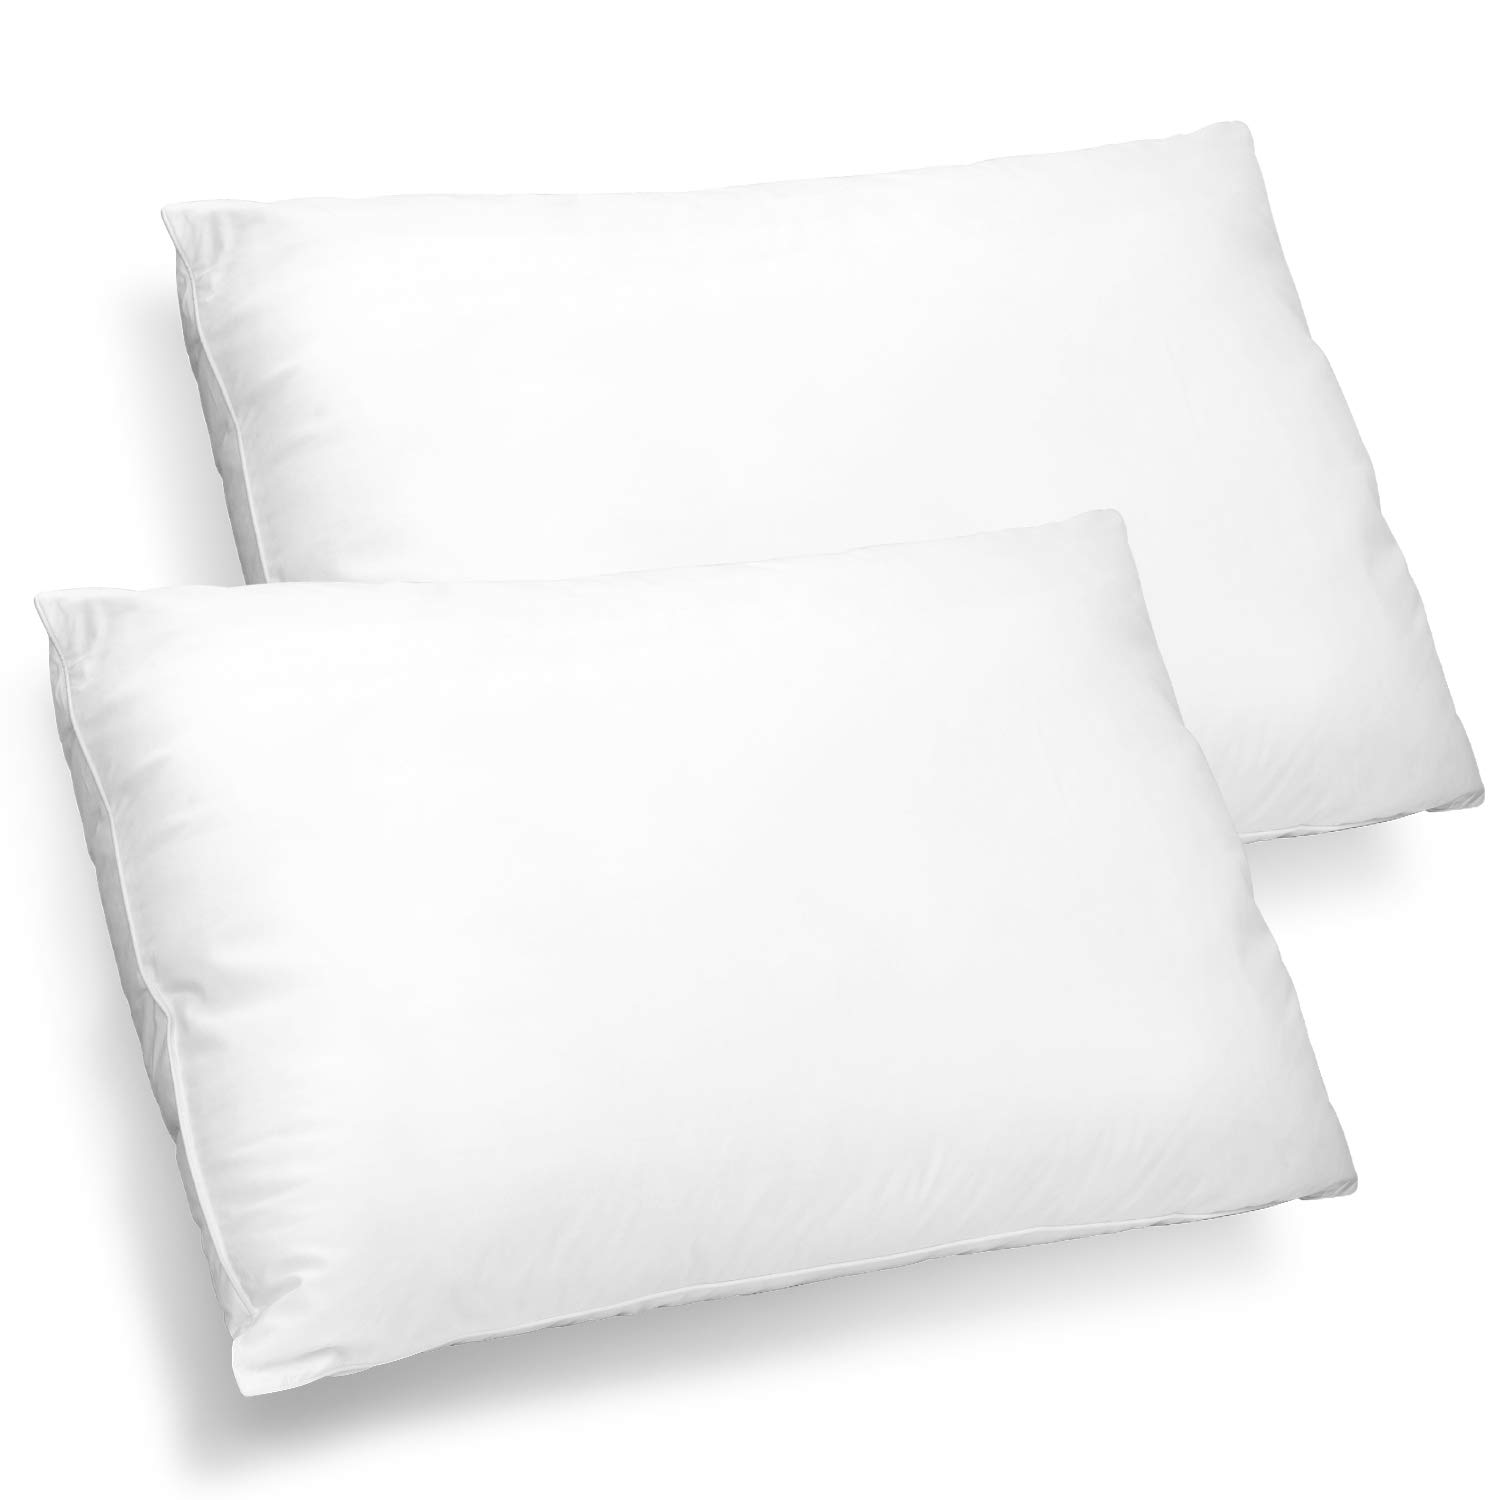 LIVINGbasics™ Extra Lush Fiber Polyester Filled Bed Pillows with Cotton Cover, 2 Pack Down Pillow (King Size)